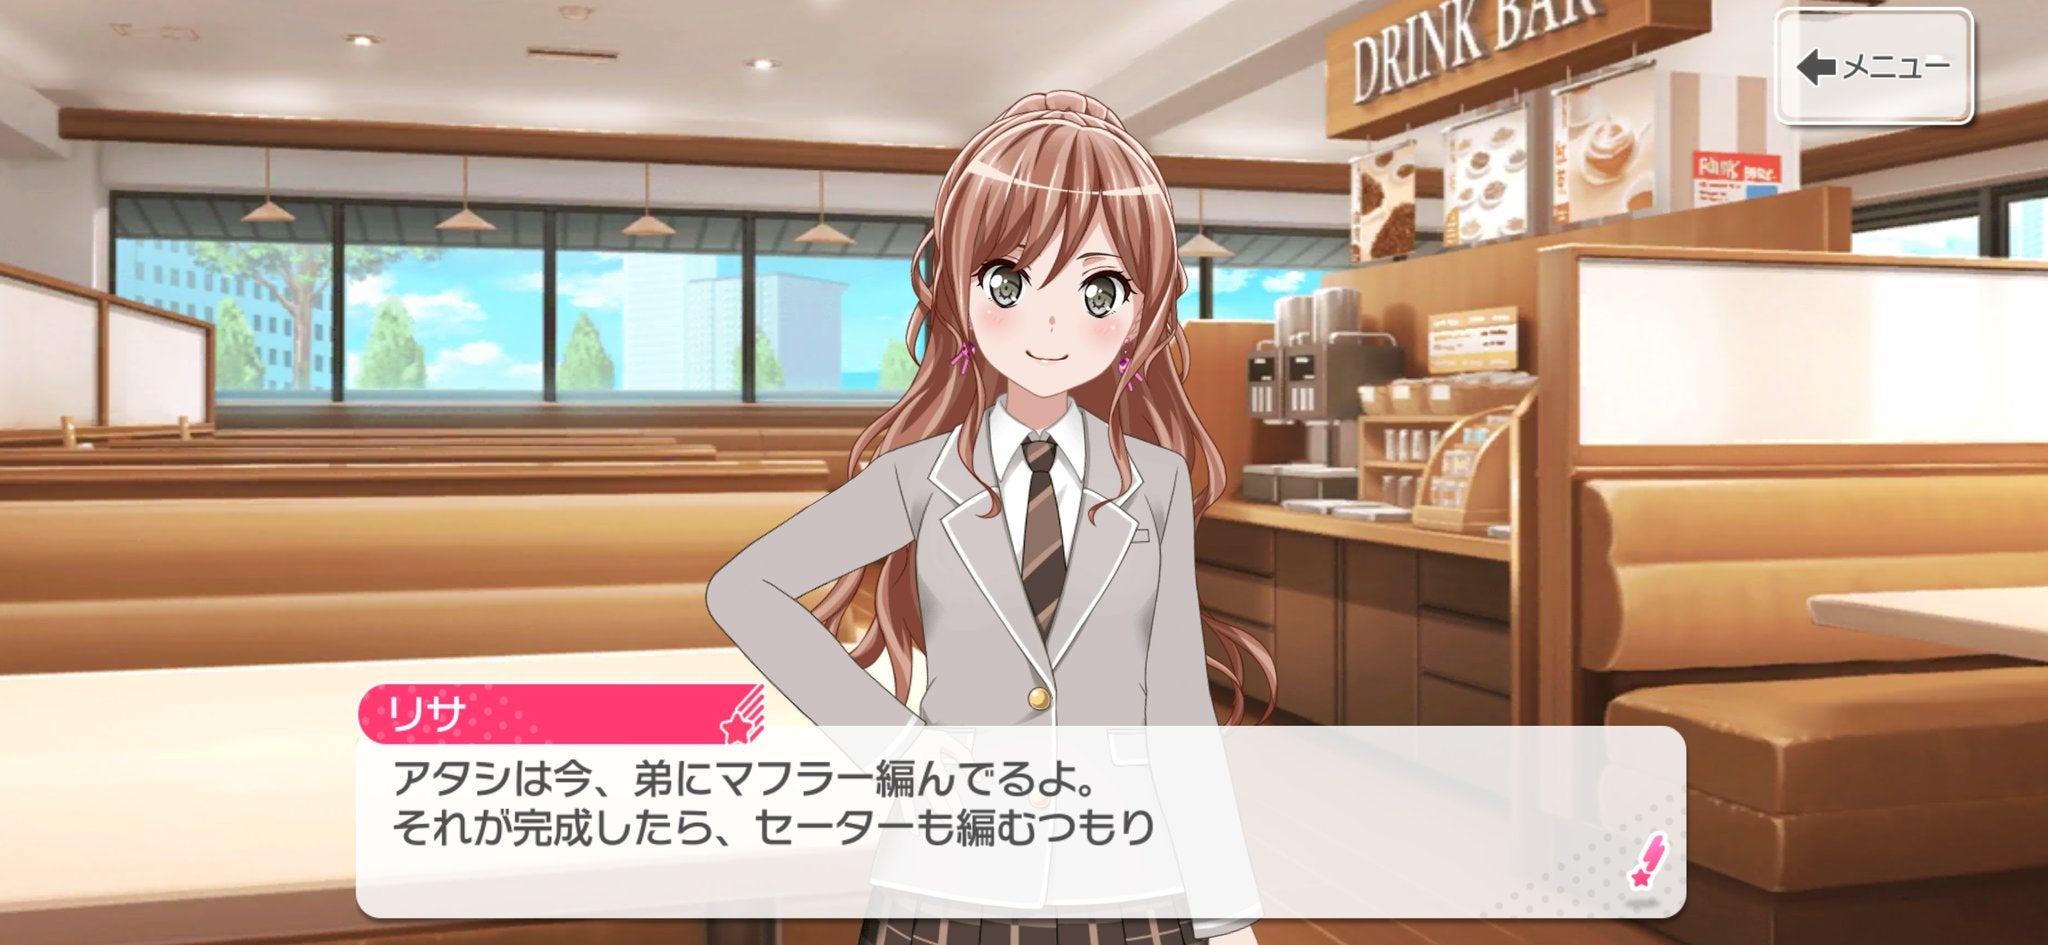 After Distasteful Comment, Bushiroad Exec Apologises